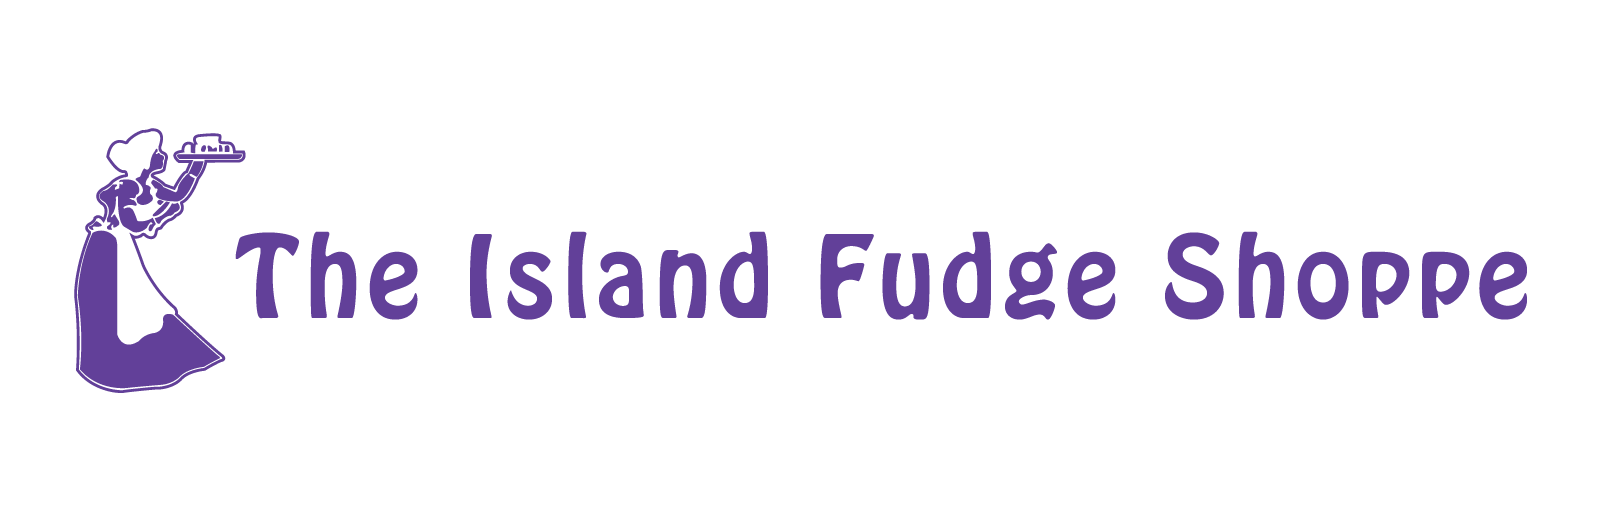 The Island Fudge Shoppe